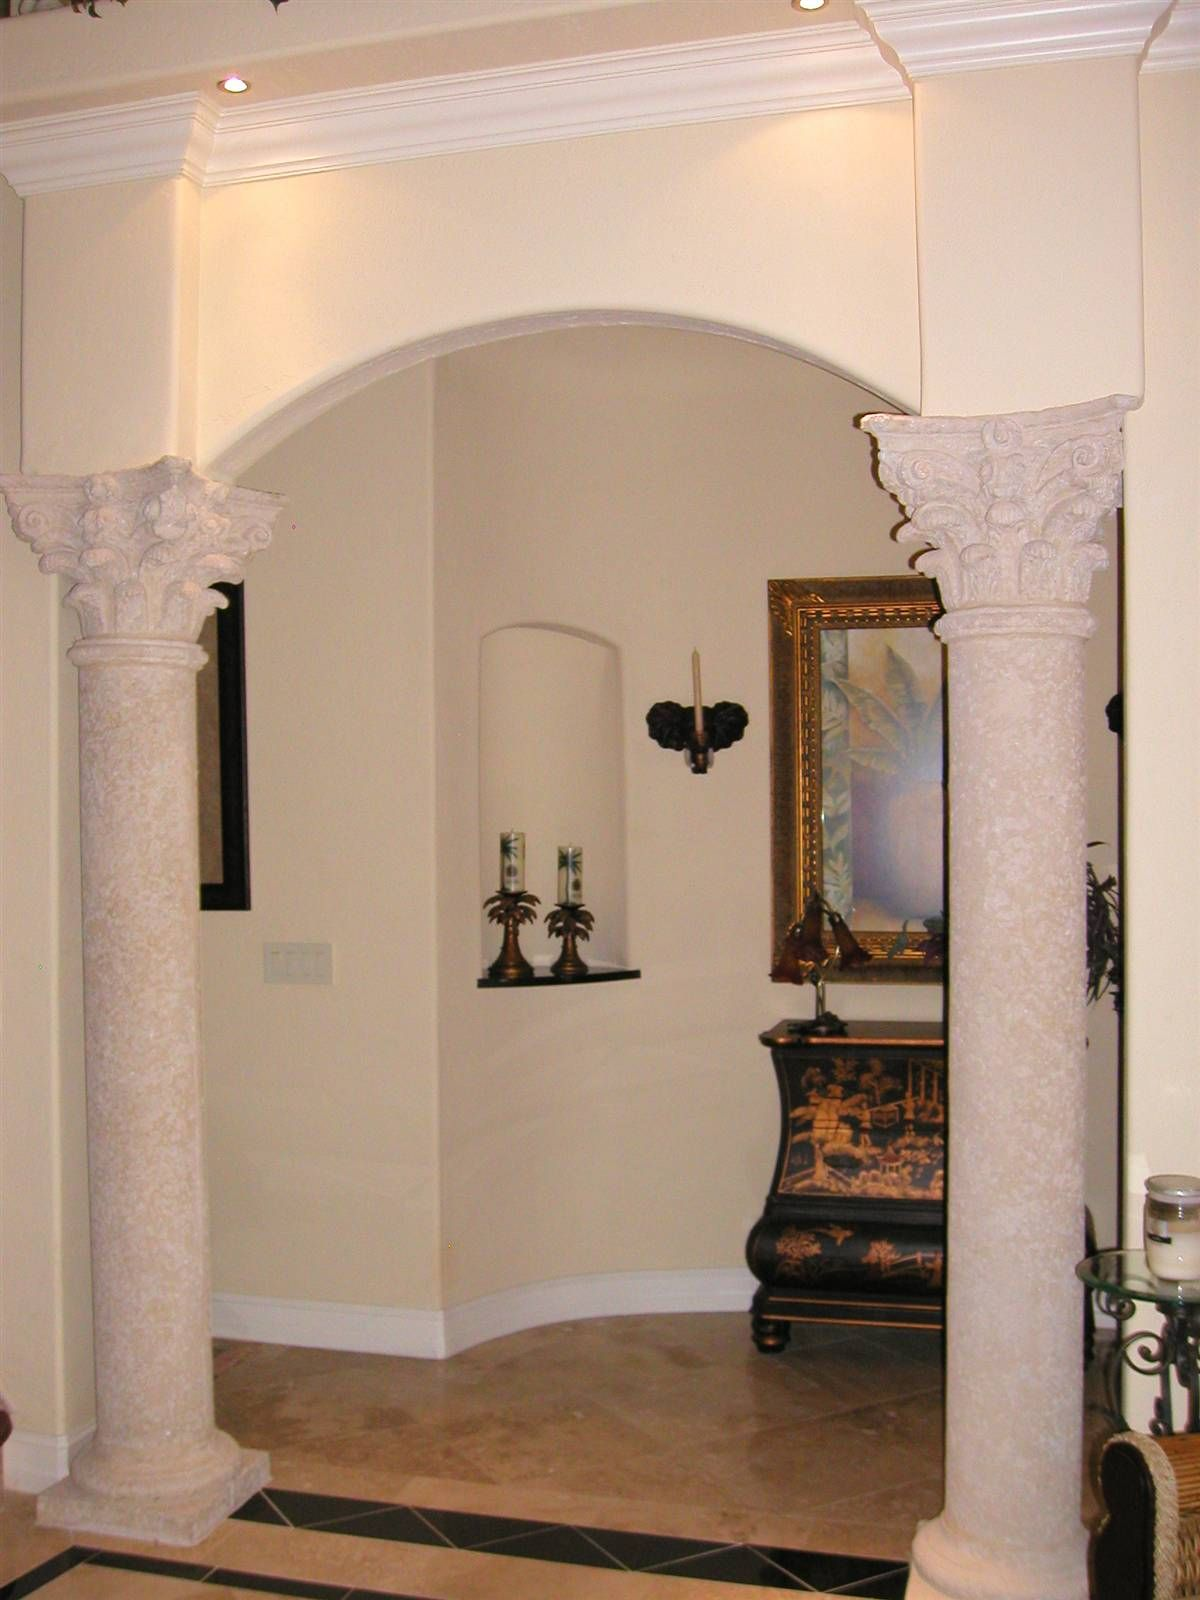 Pin by rahayu12 on simple room low budget modern and - Decorative columns interior design ...